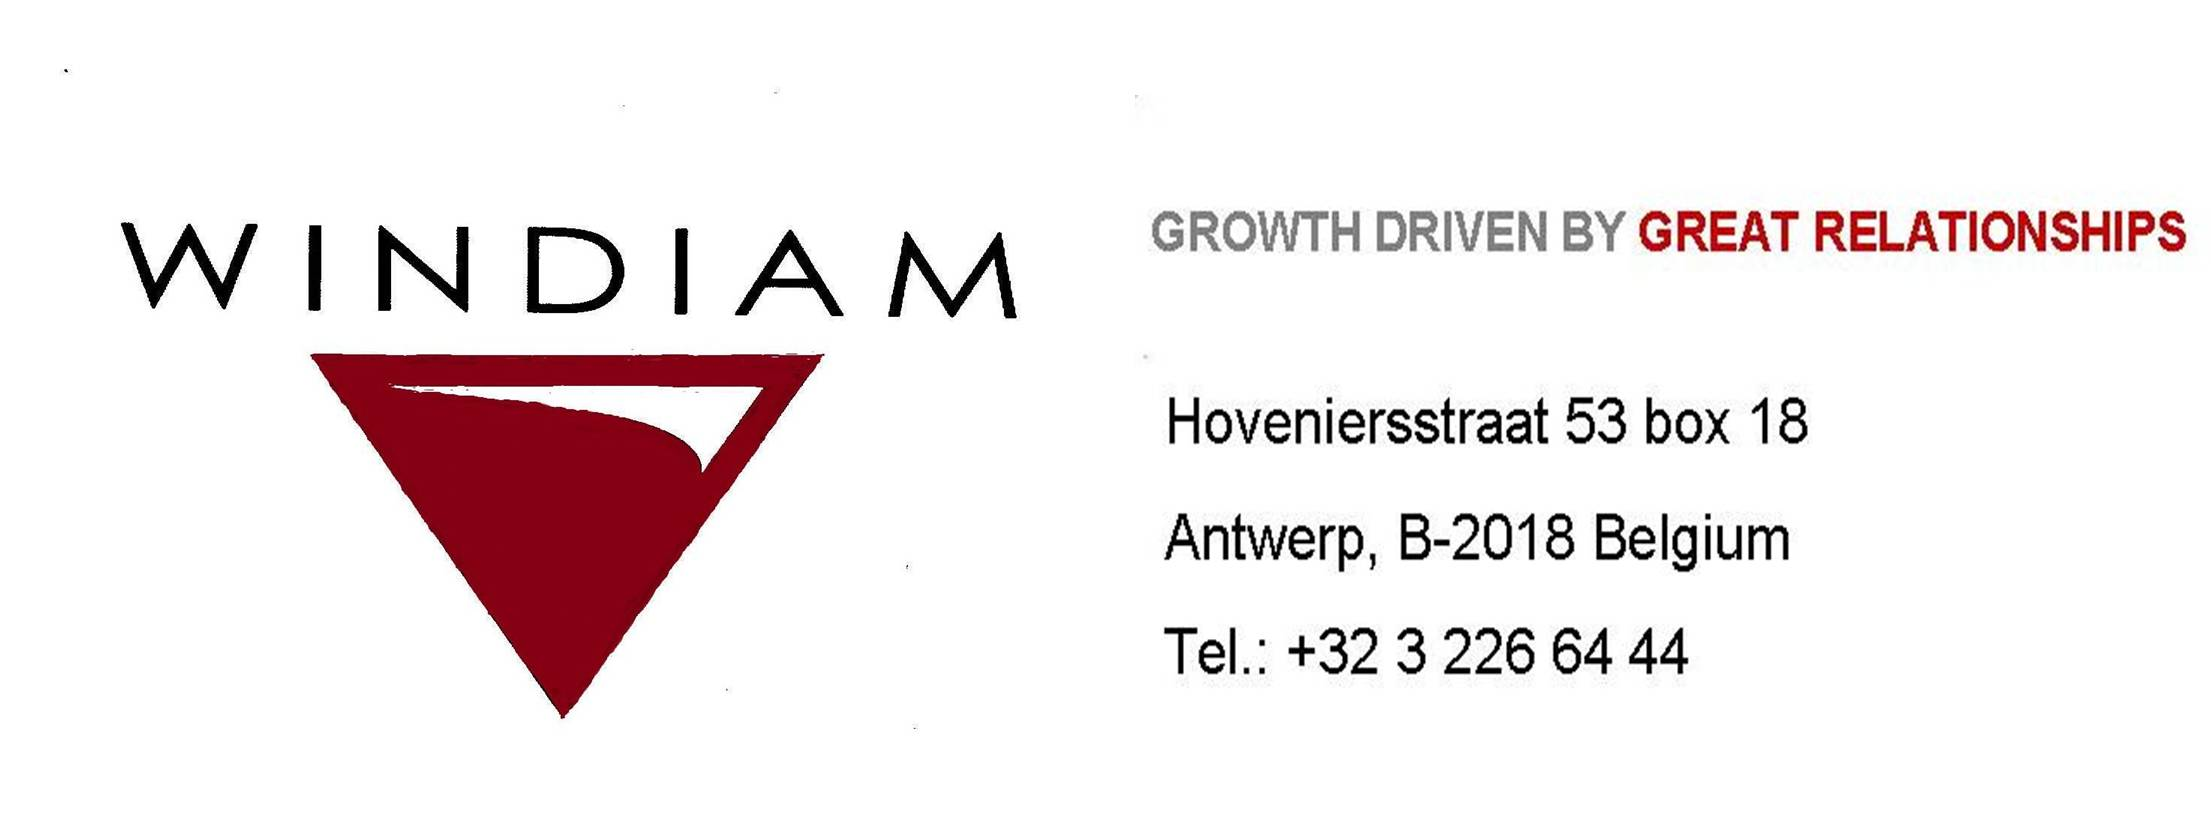 Windiam advertentie jan 2015.jpg